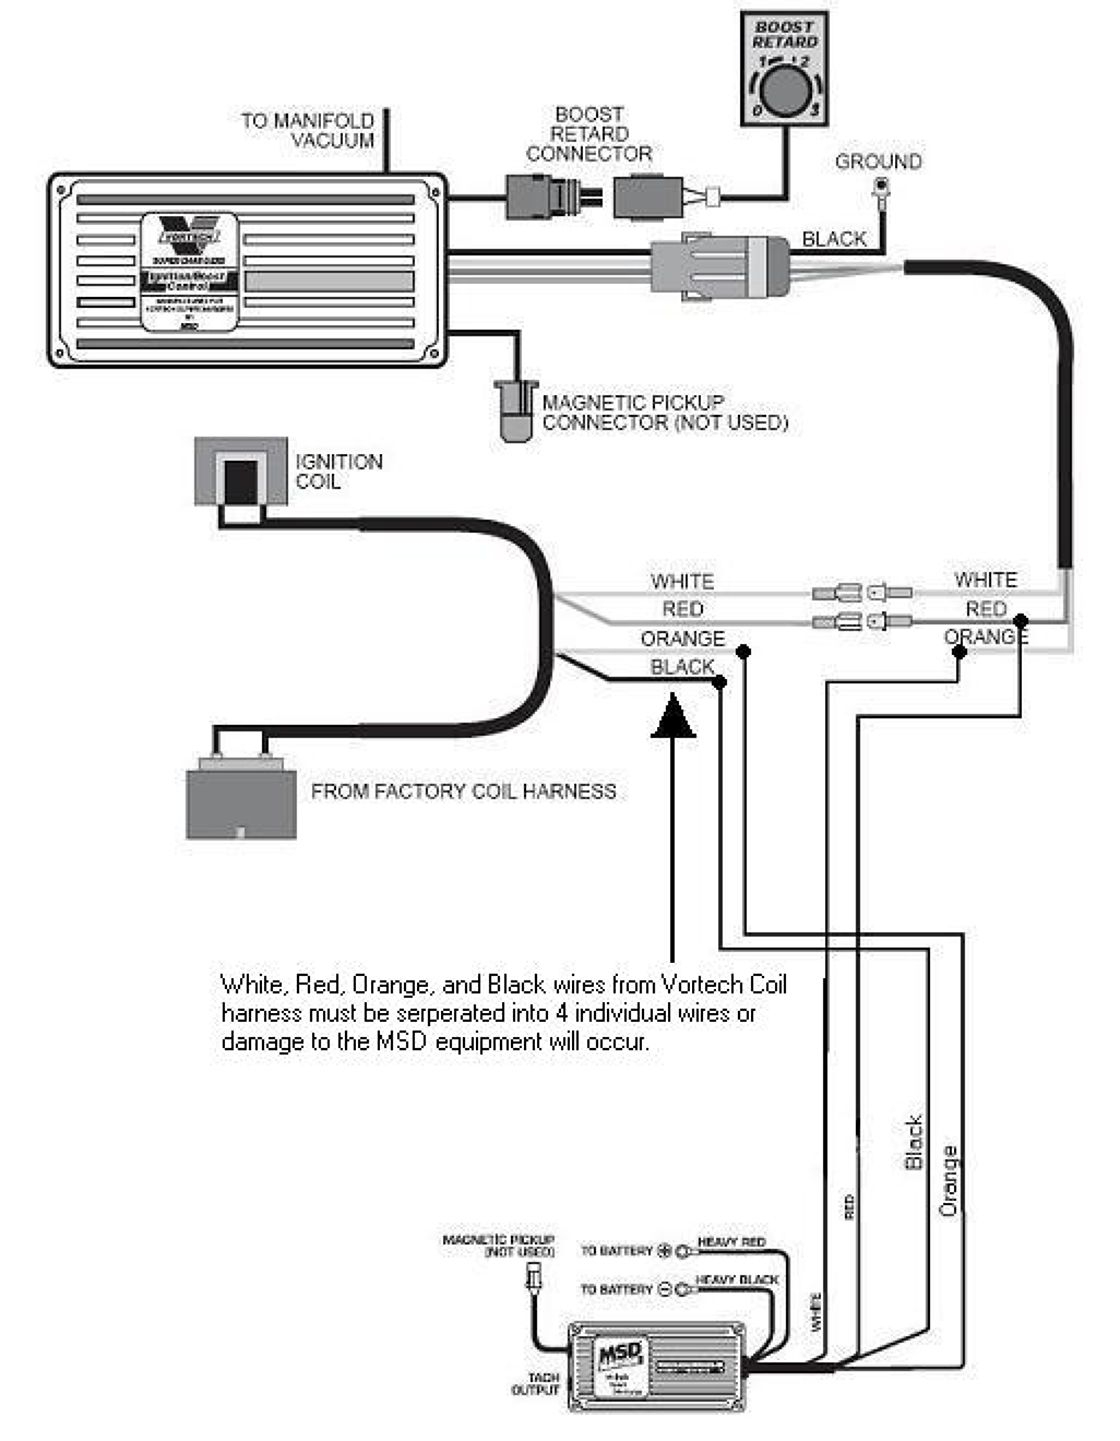 Boost Msd Digital 6Al Wiring Diagram | Wiring Diagram - Msd Digital 6Al Wiring Diagram